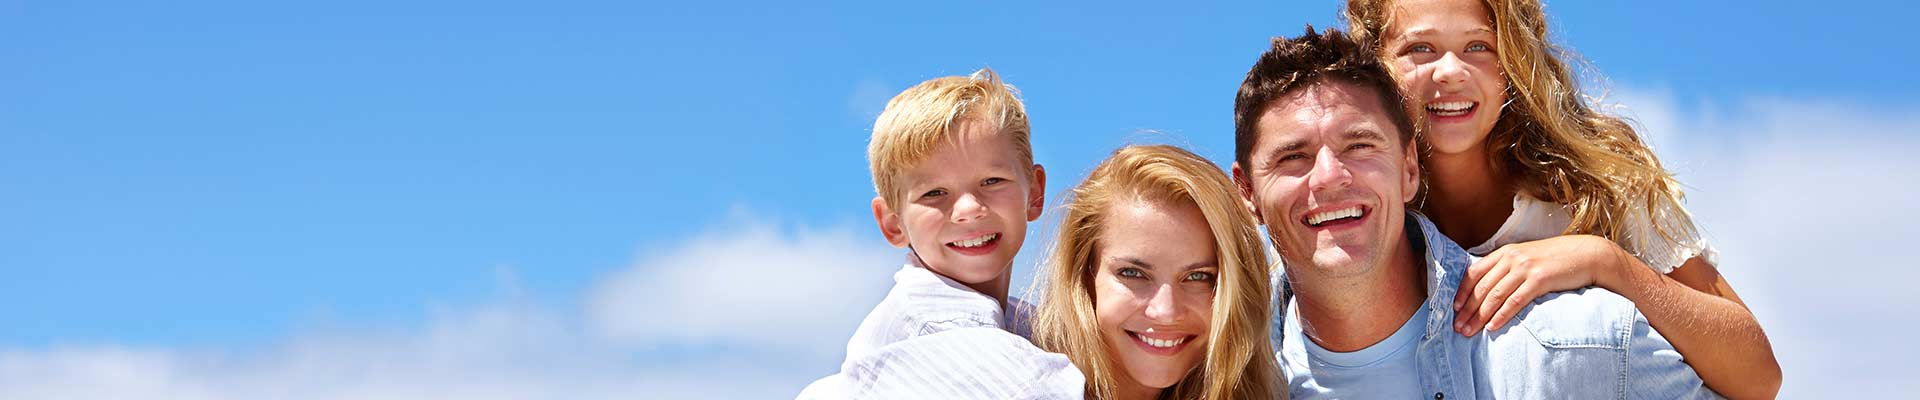 Family San Ramon Children's Dentistry and Orthodontics in San Ramon, CA